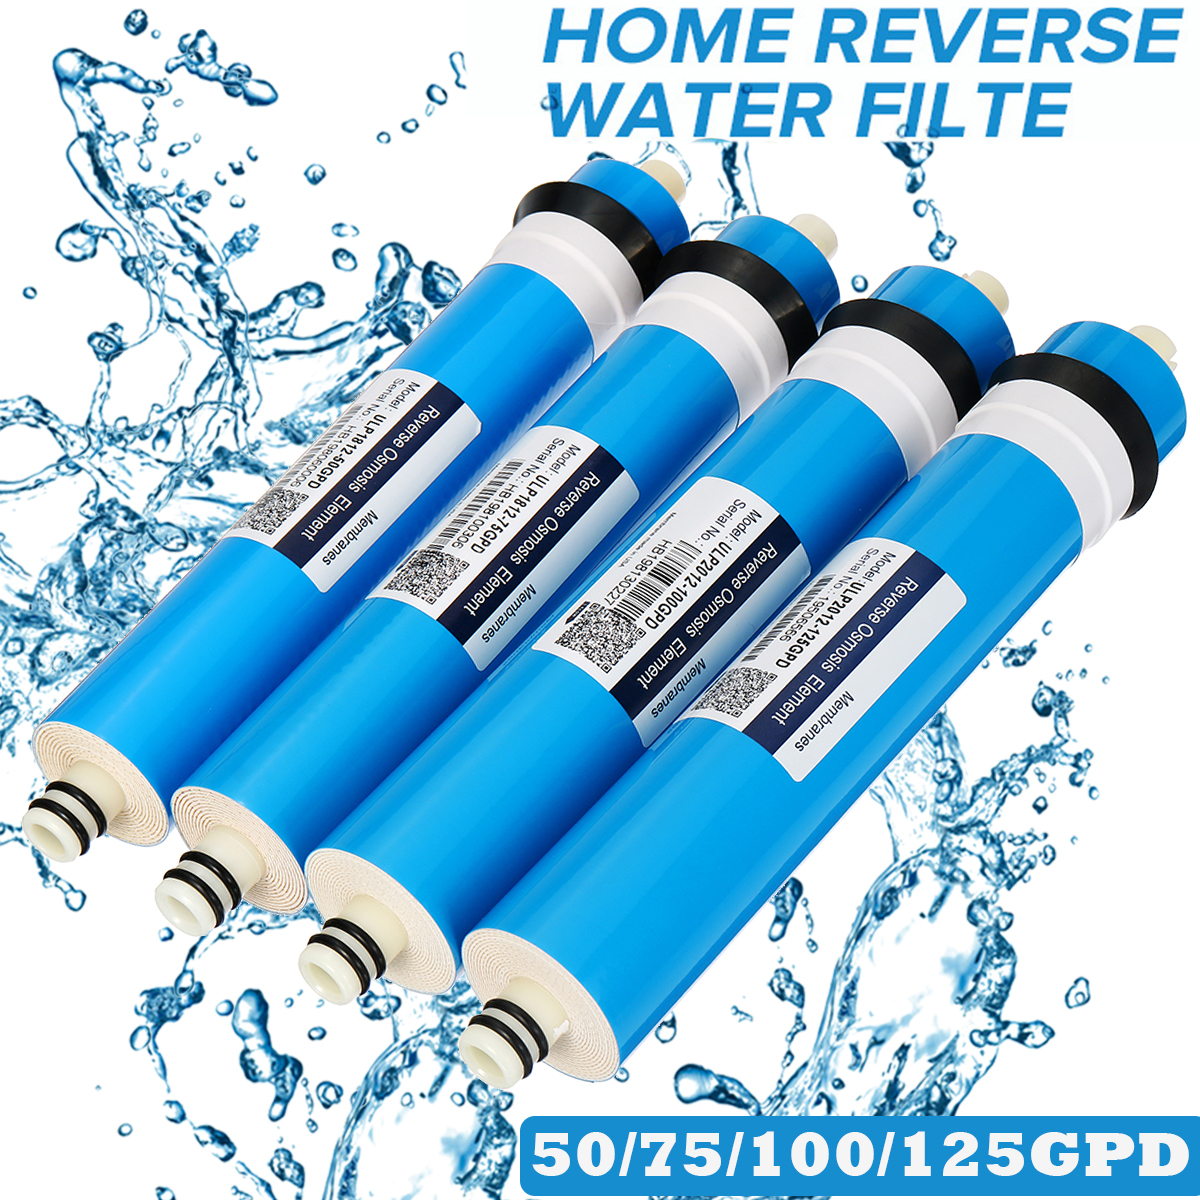 75/100/125 GPD RO Membrane For 5  Water Filter Purifier Treatment Reverse Osmosis System